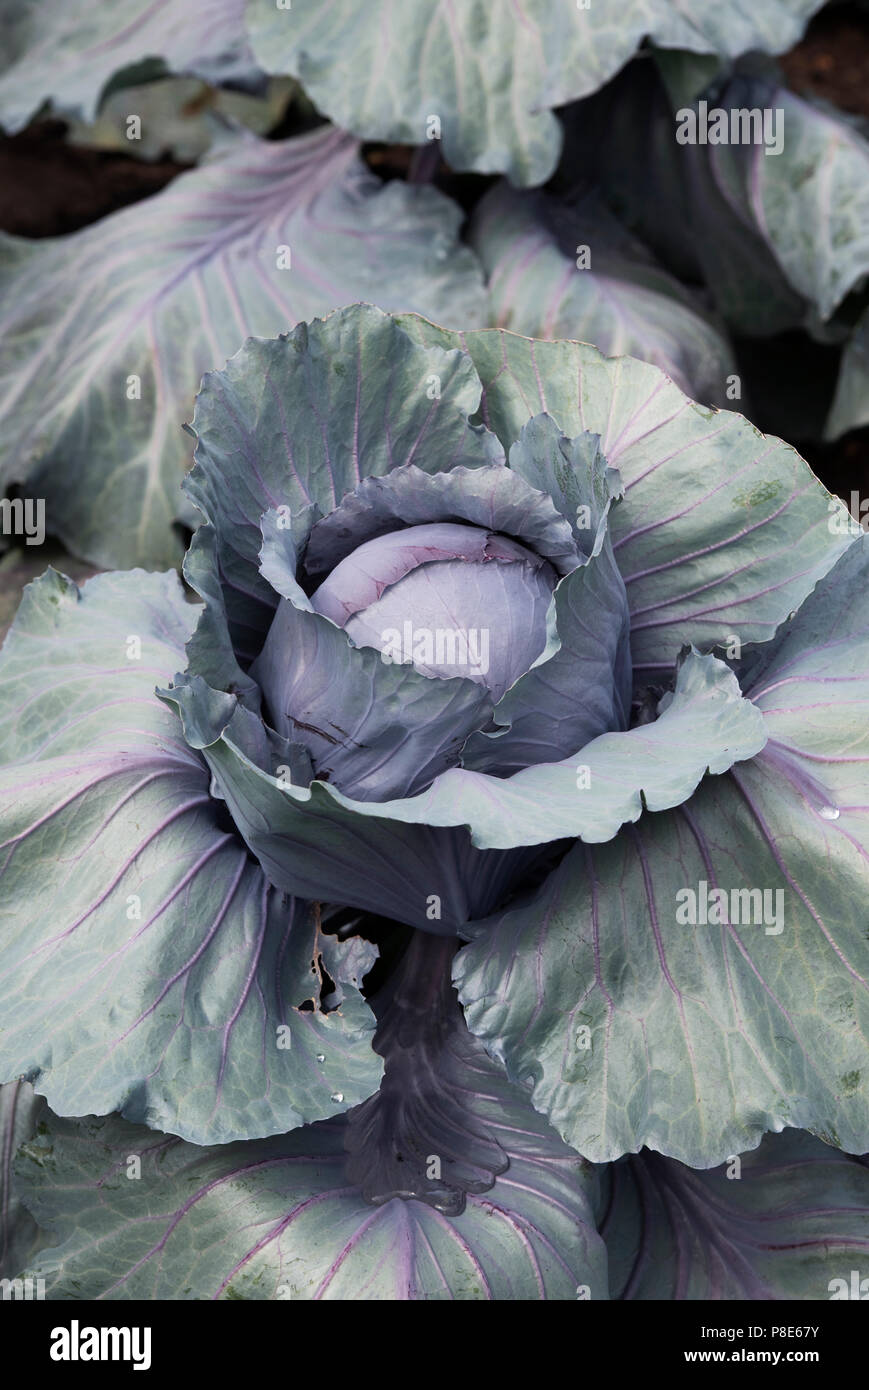 Brassica oleracea . Cabbage 'Red jewel'. Cabbages growing on a vegetable display at RHS Hampton court flower show 2018. London - Stock Image